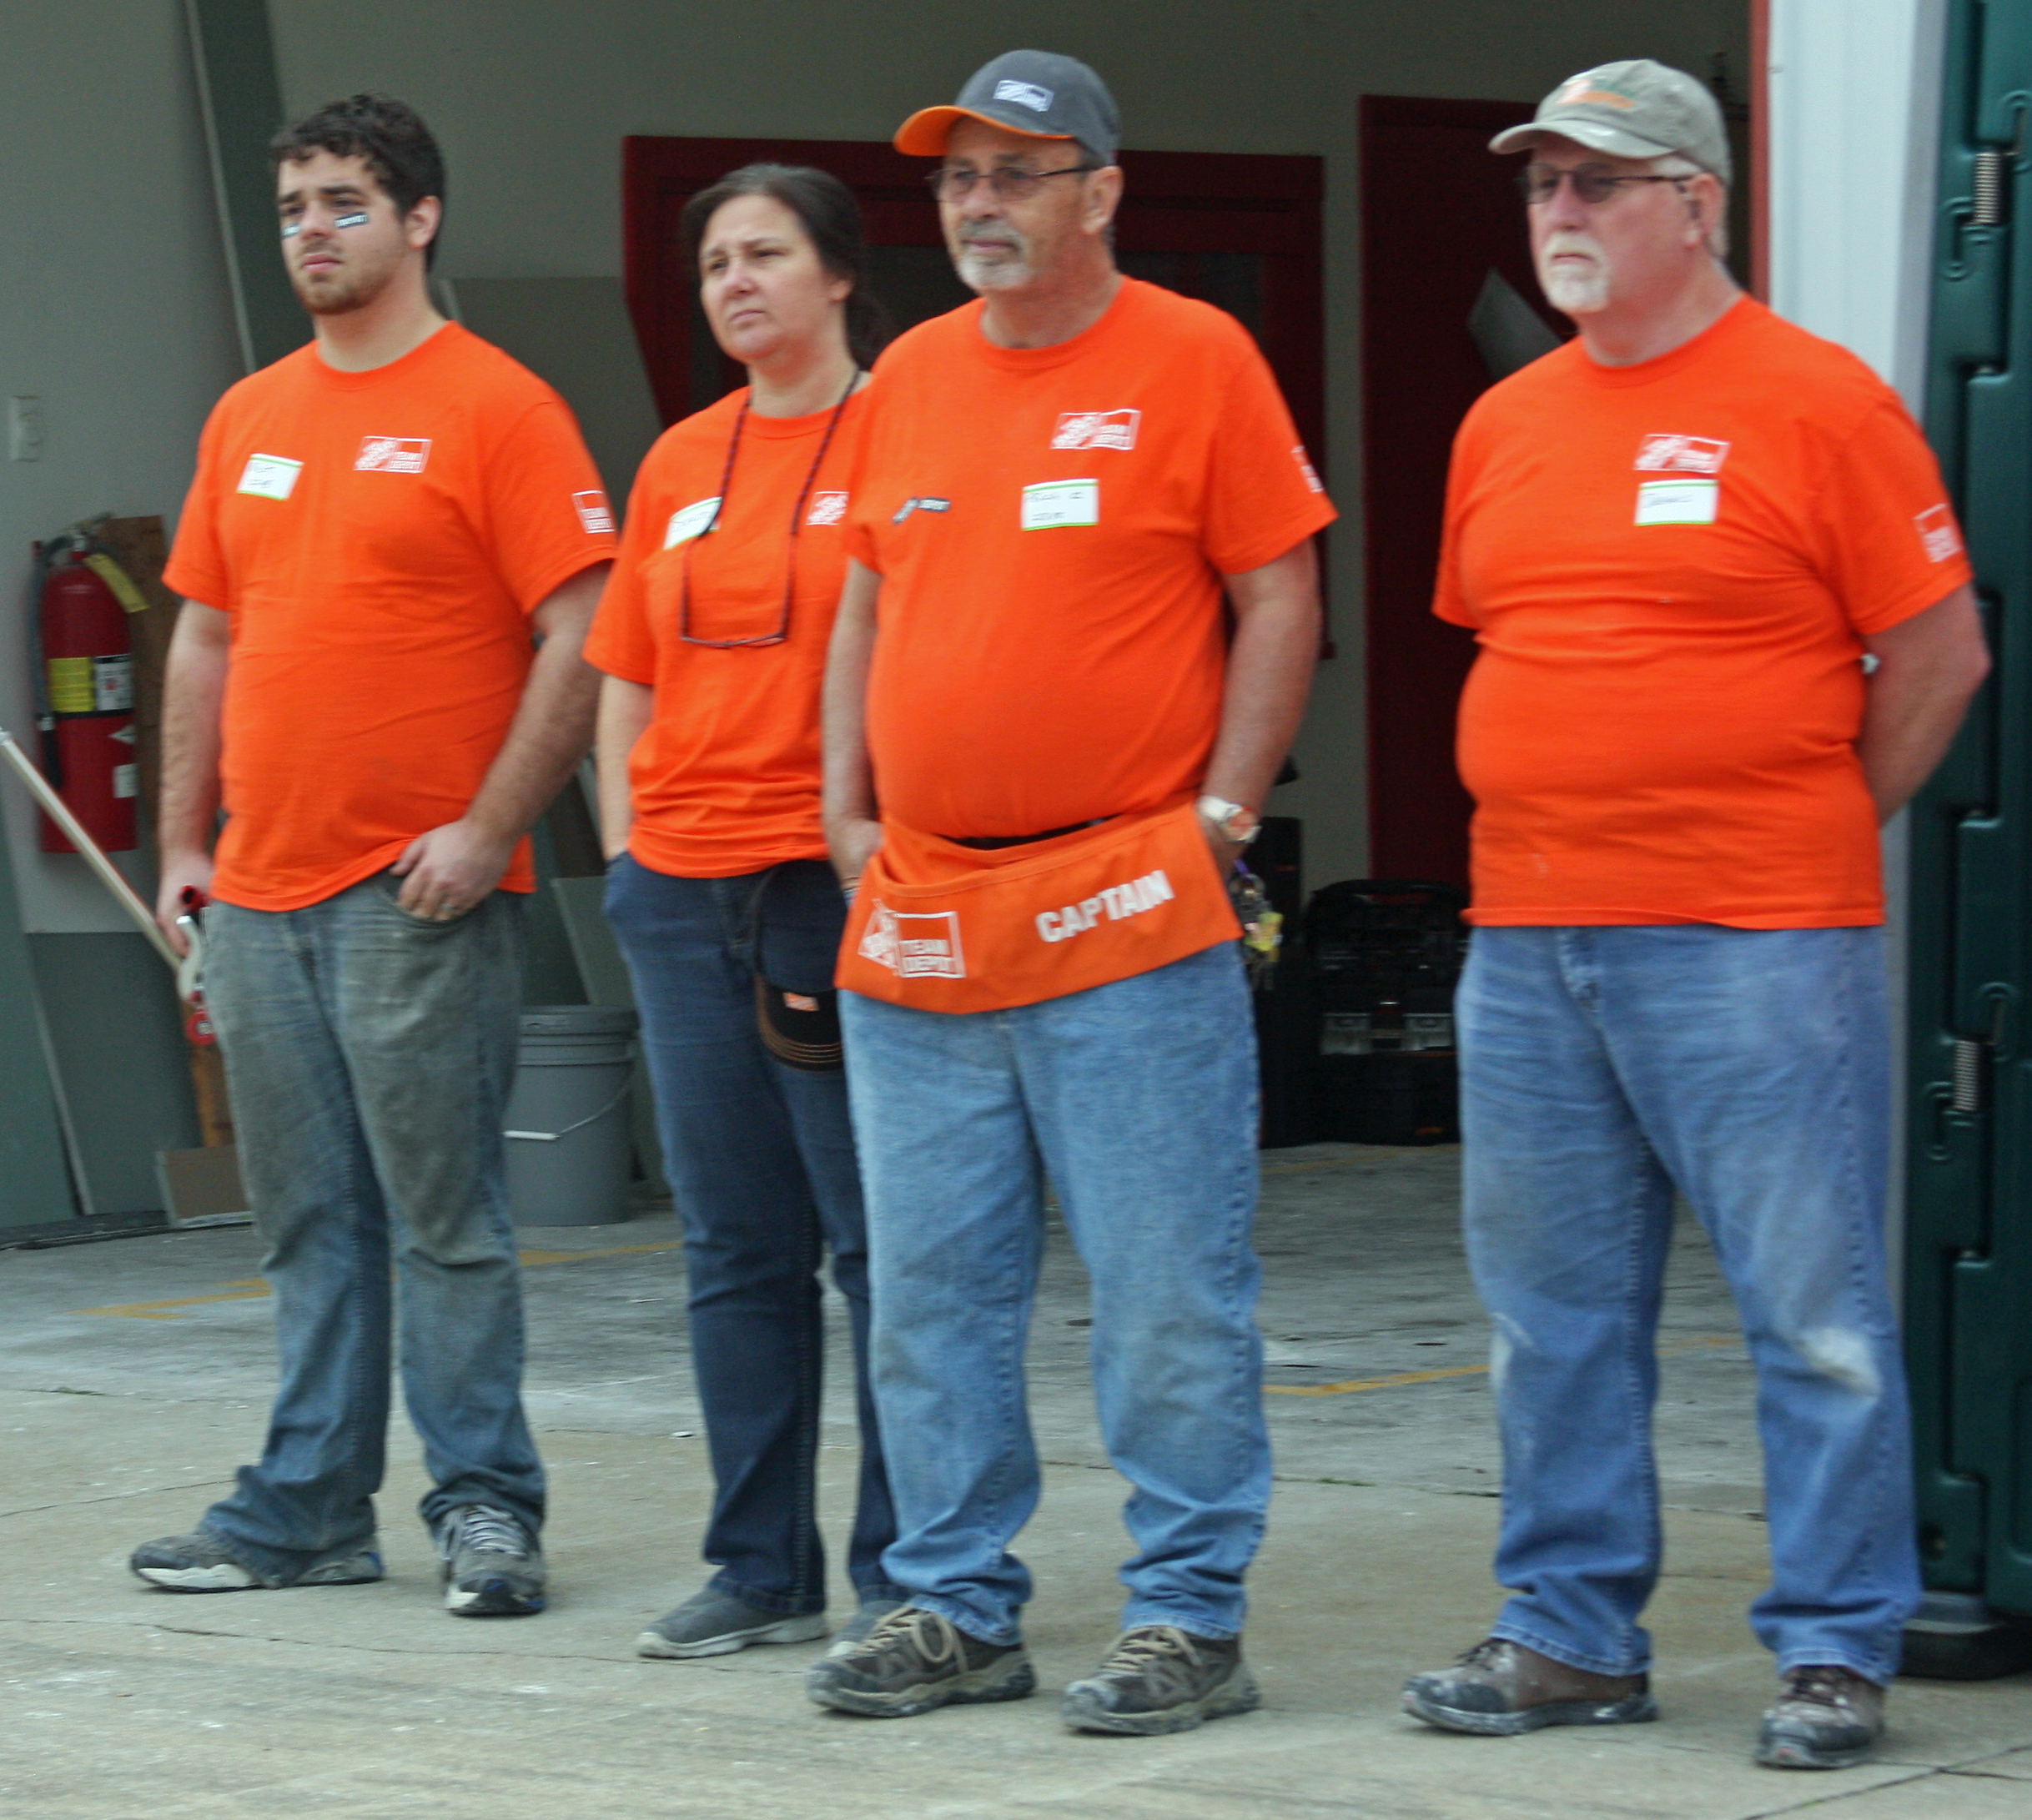 Pictures of home depot employees.